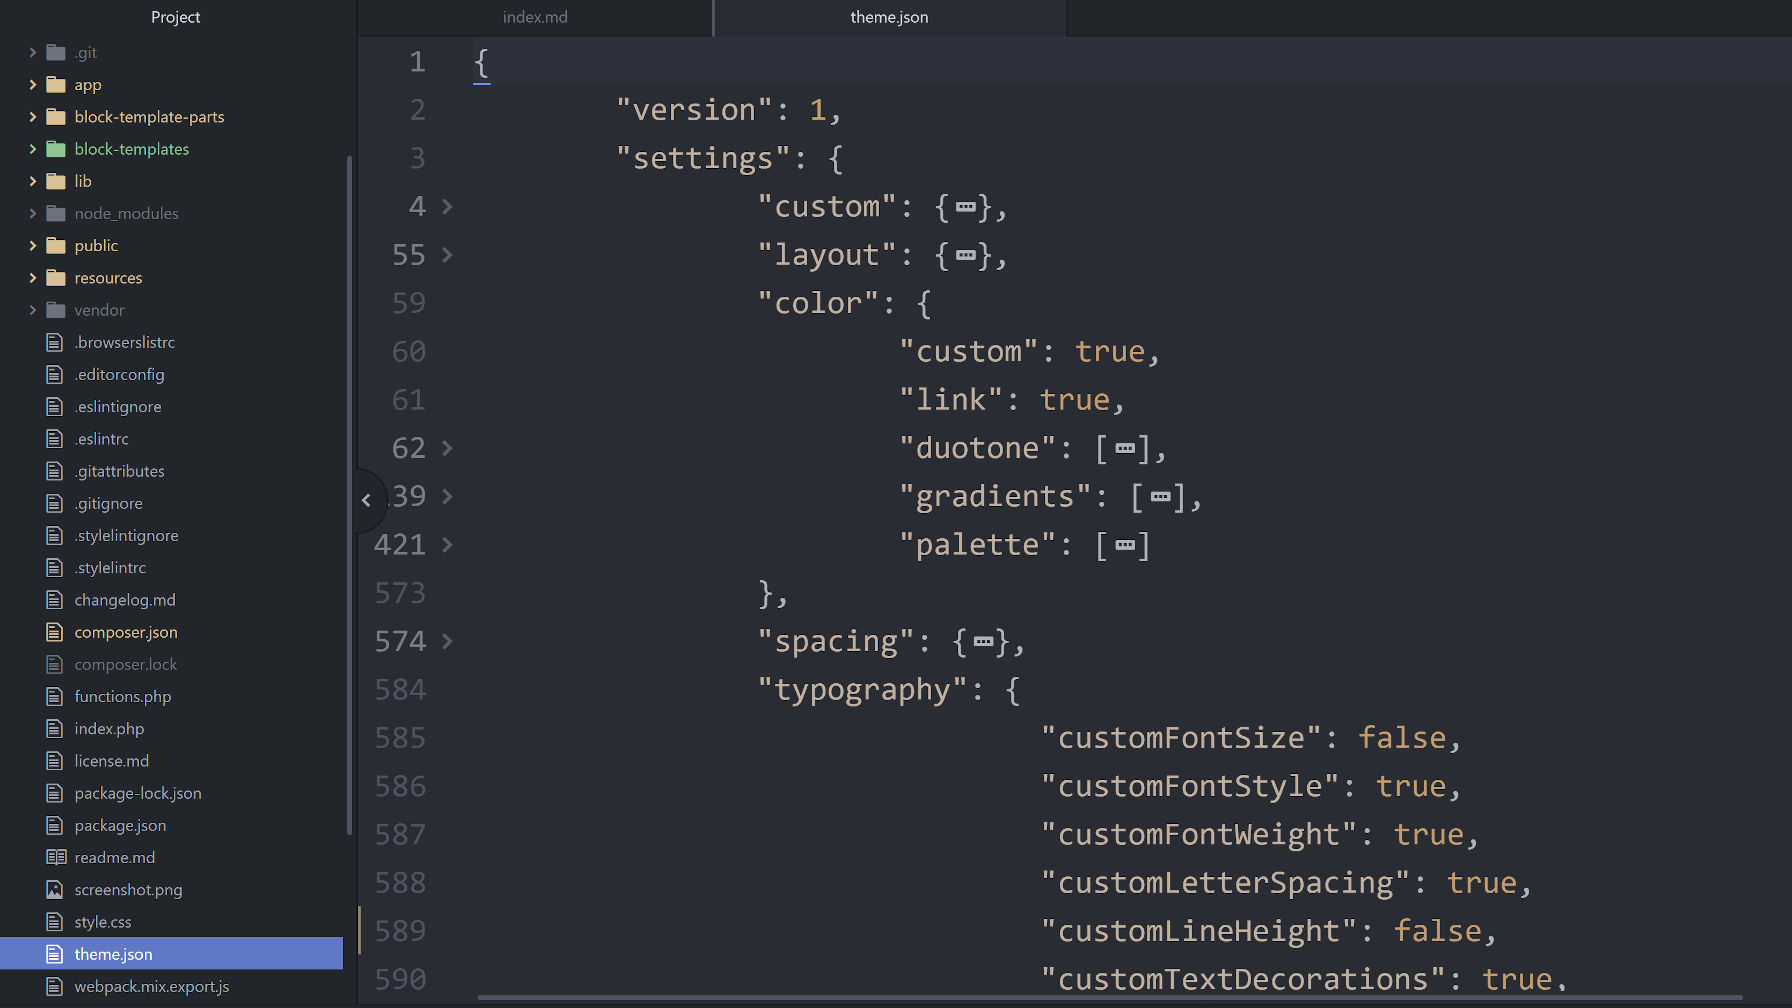 Screenshot of a theme.json file in a code editor.